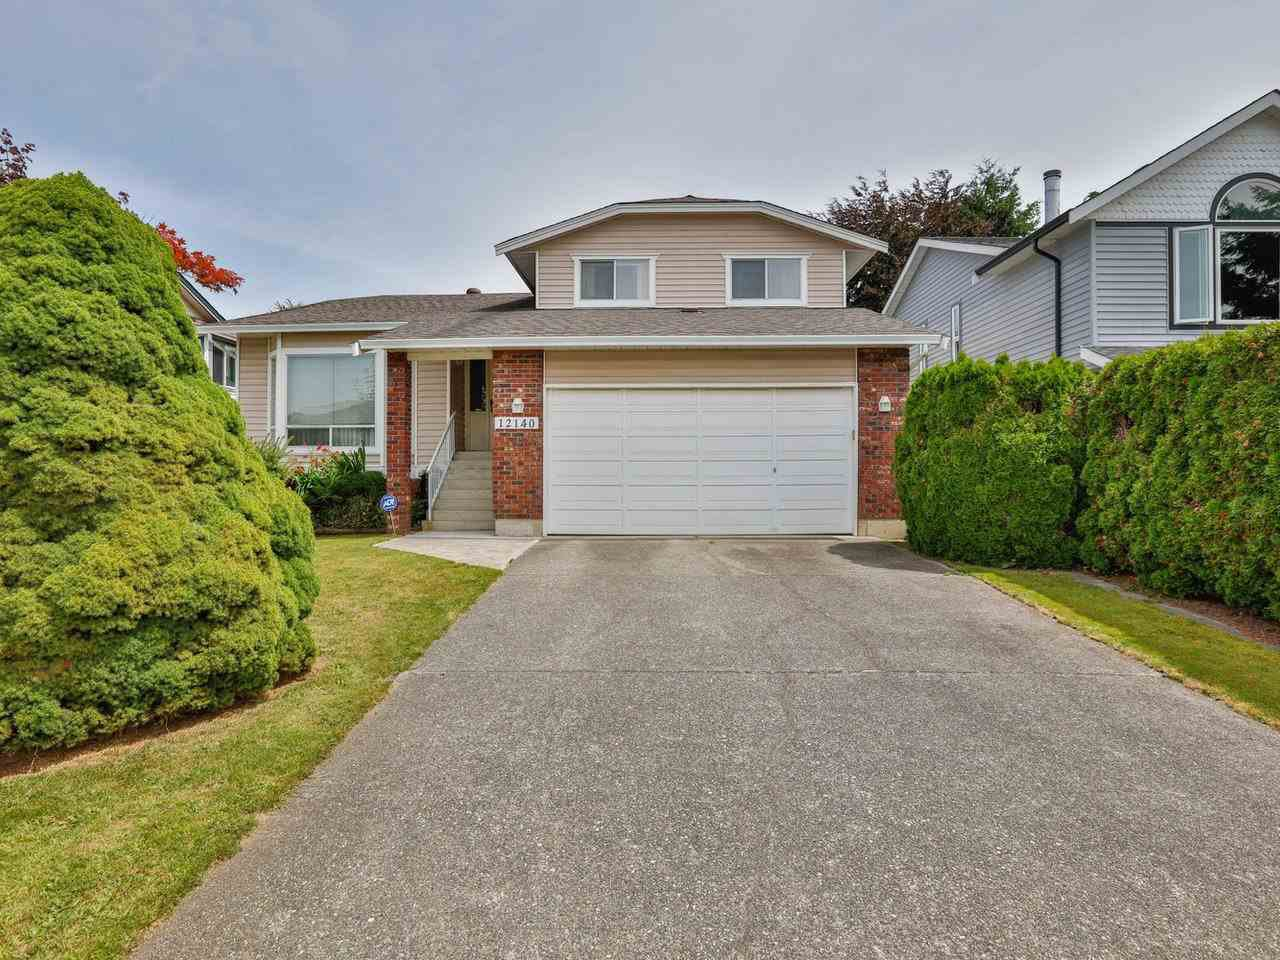 Main Photo: 12140 202 Street in Maple Ridge: Northwest Maple Ridge House for sale : MLS®# R2394155